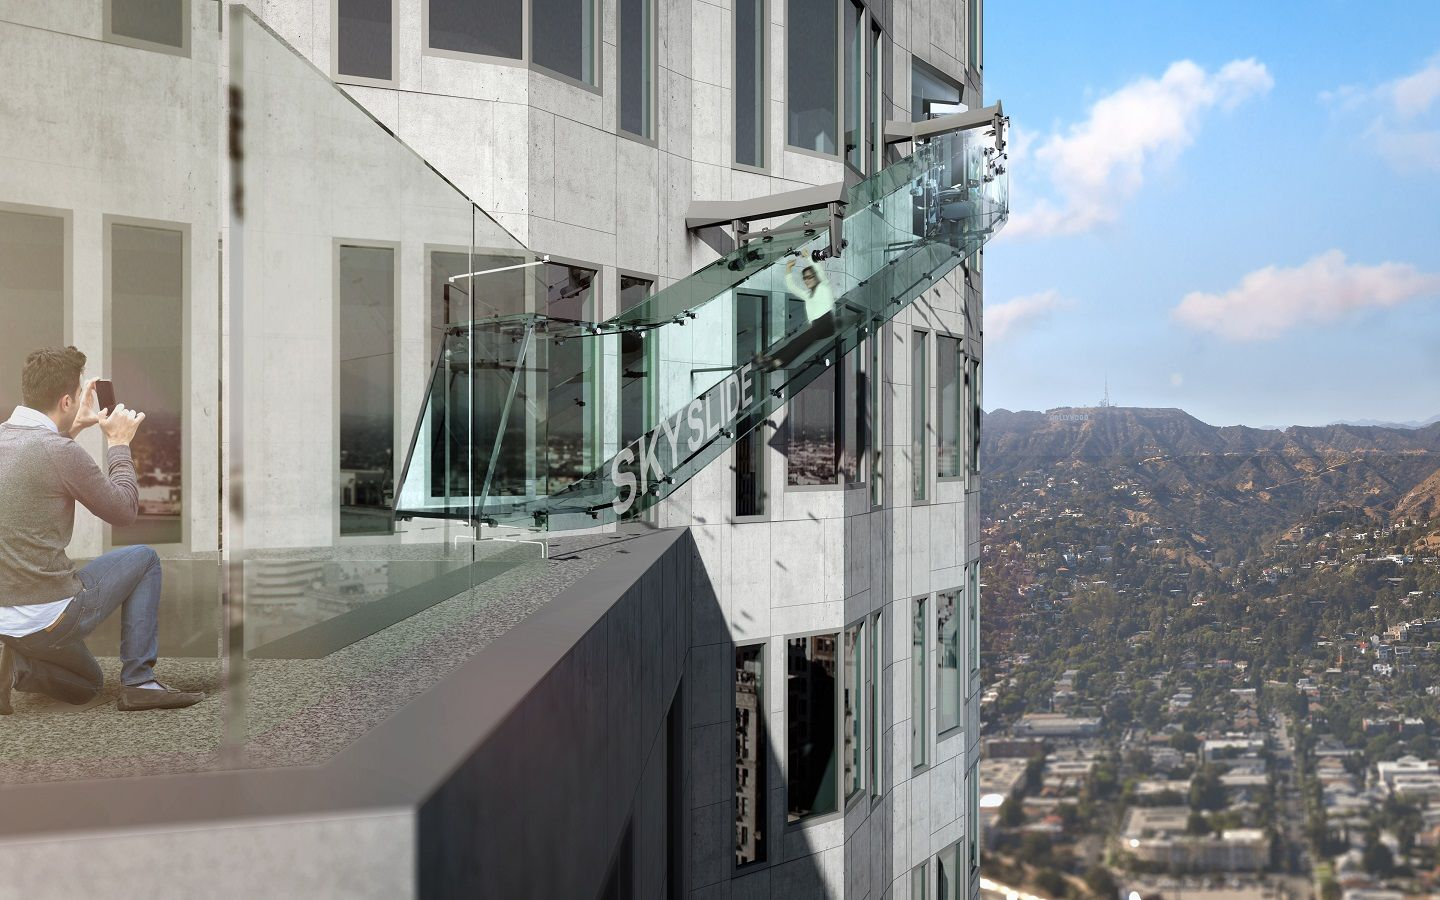 A Deliciously Terrifying Glass Slide That Hangs 1 000 Feet Above Downtown Los Angeles Los Angeles Skyscrapers Us Bank Tower Glass Slides